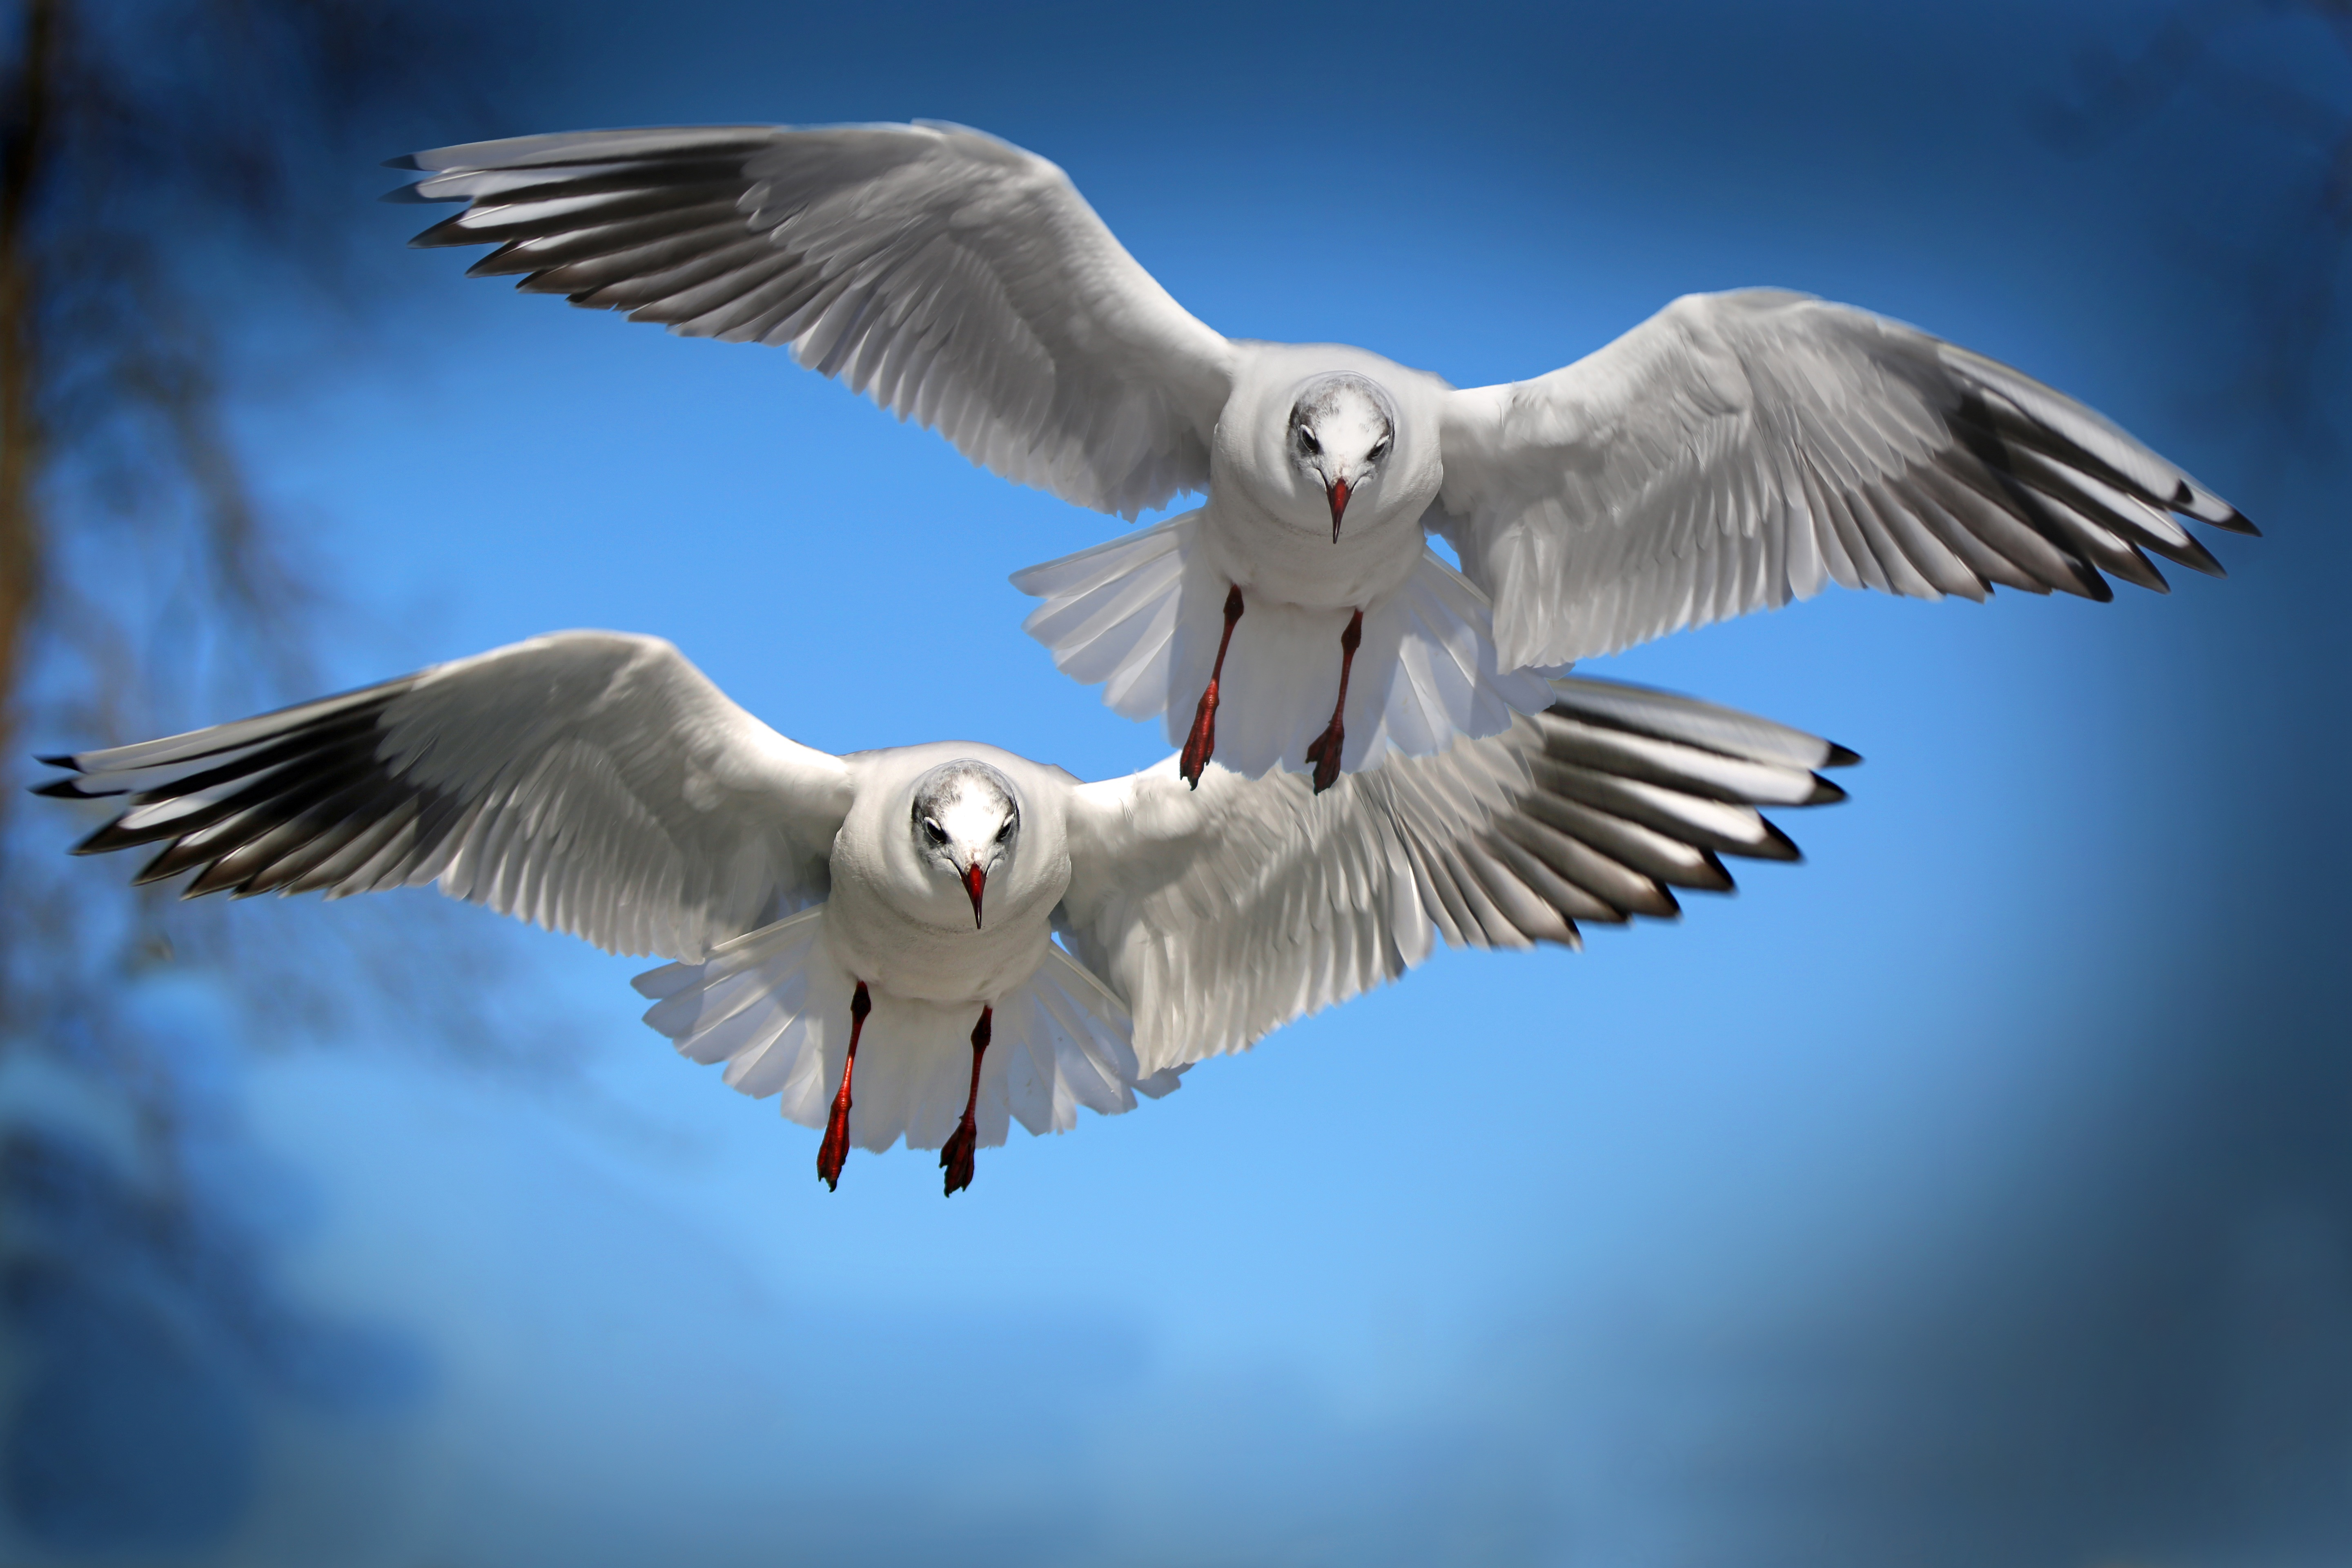 146912 download wallpaper Animals, Flight, Sweep, Wave, Birds, Seagulls screensavers and pictures for free